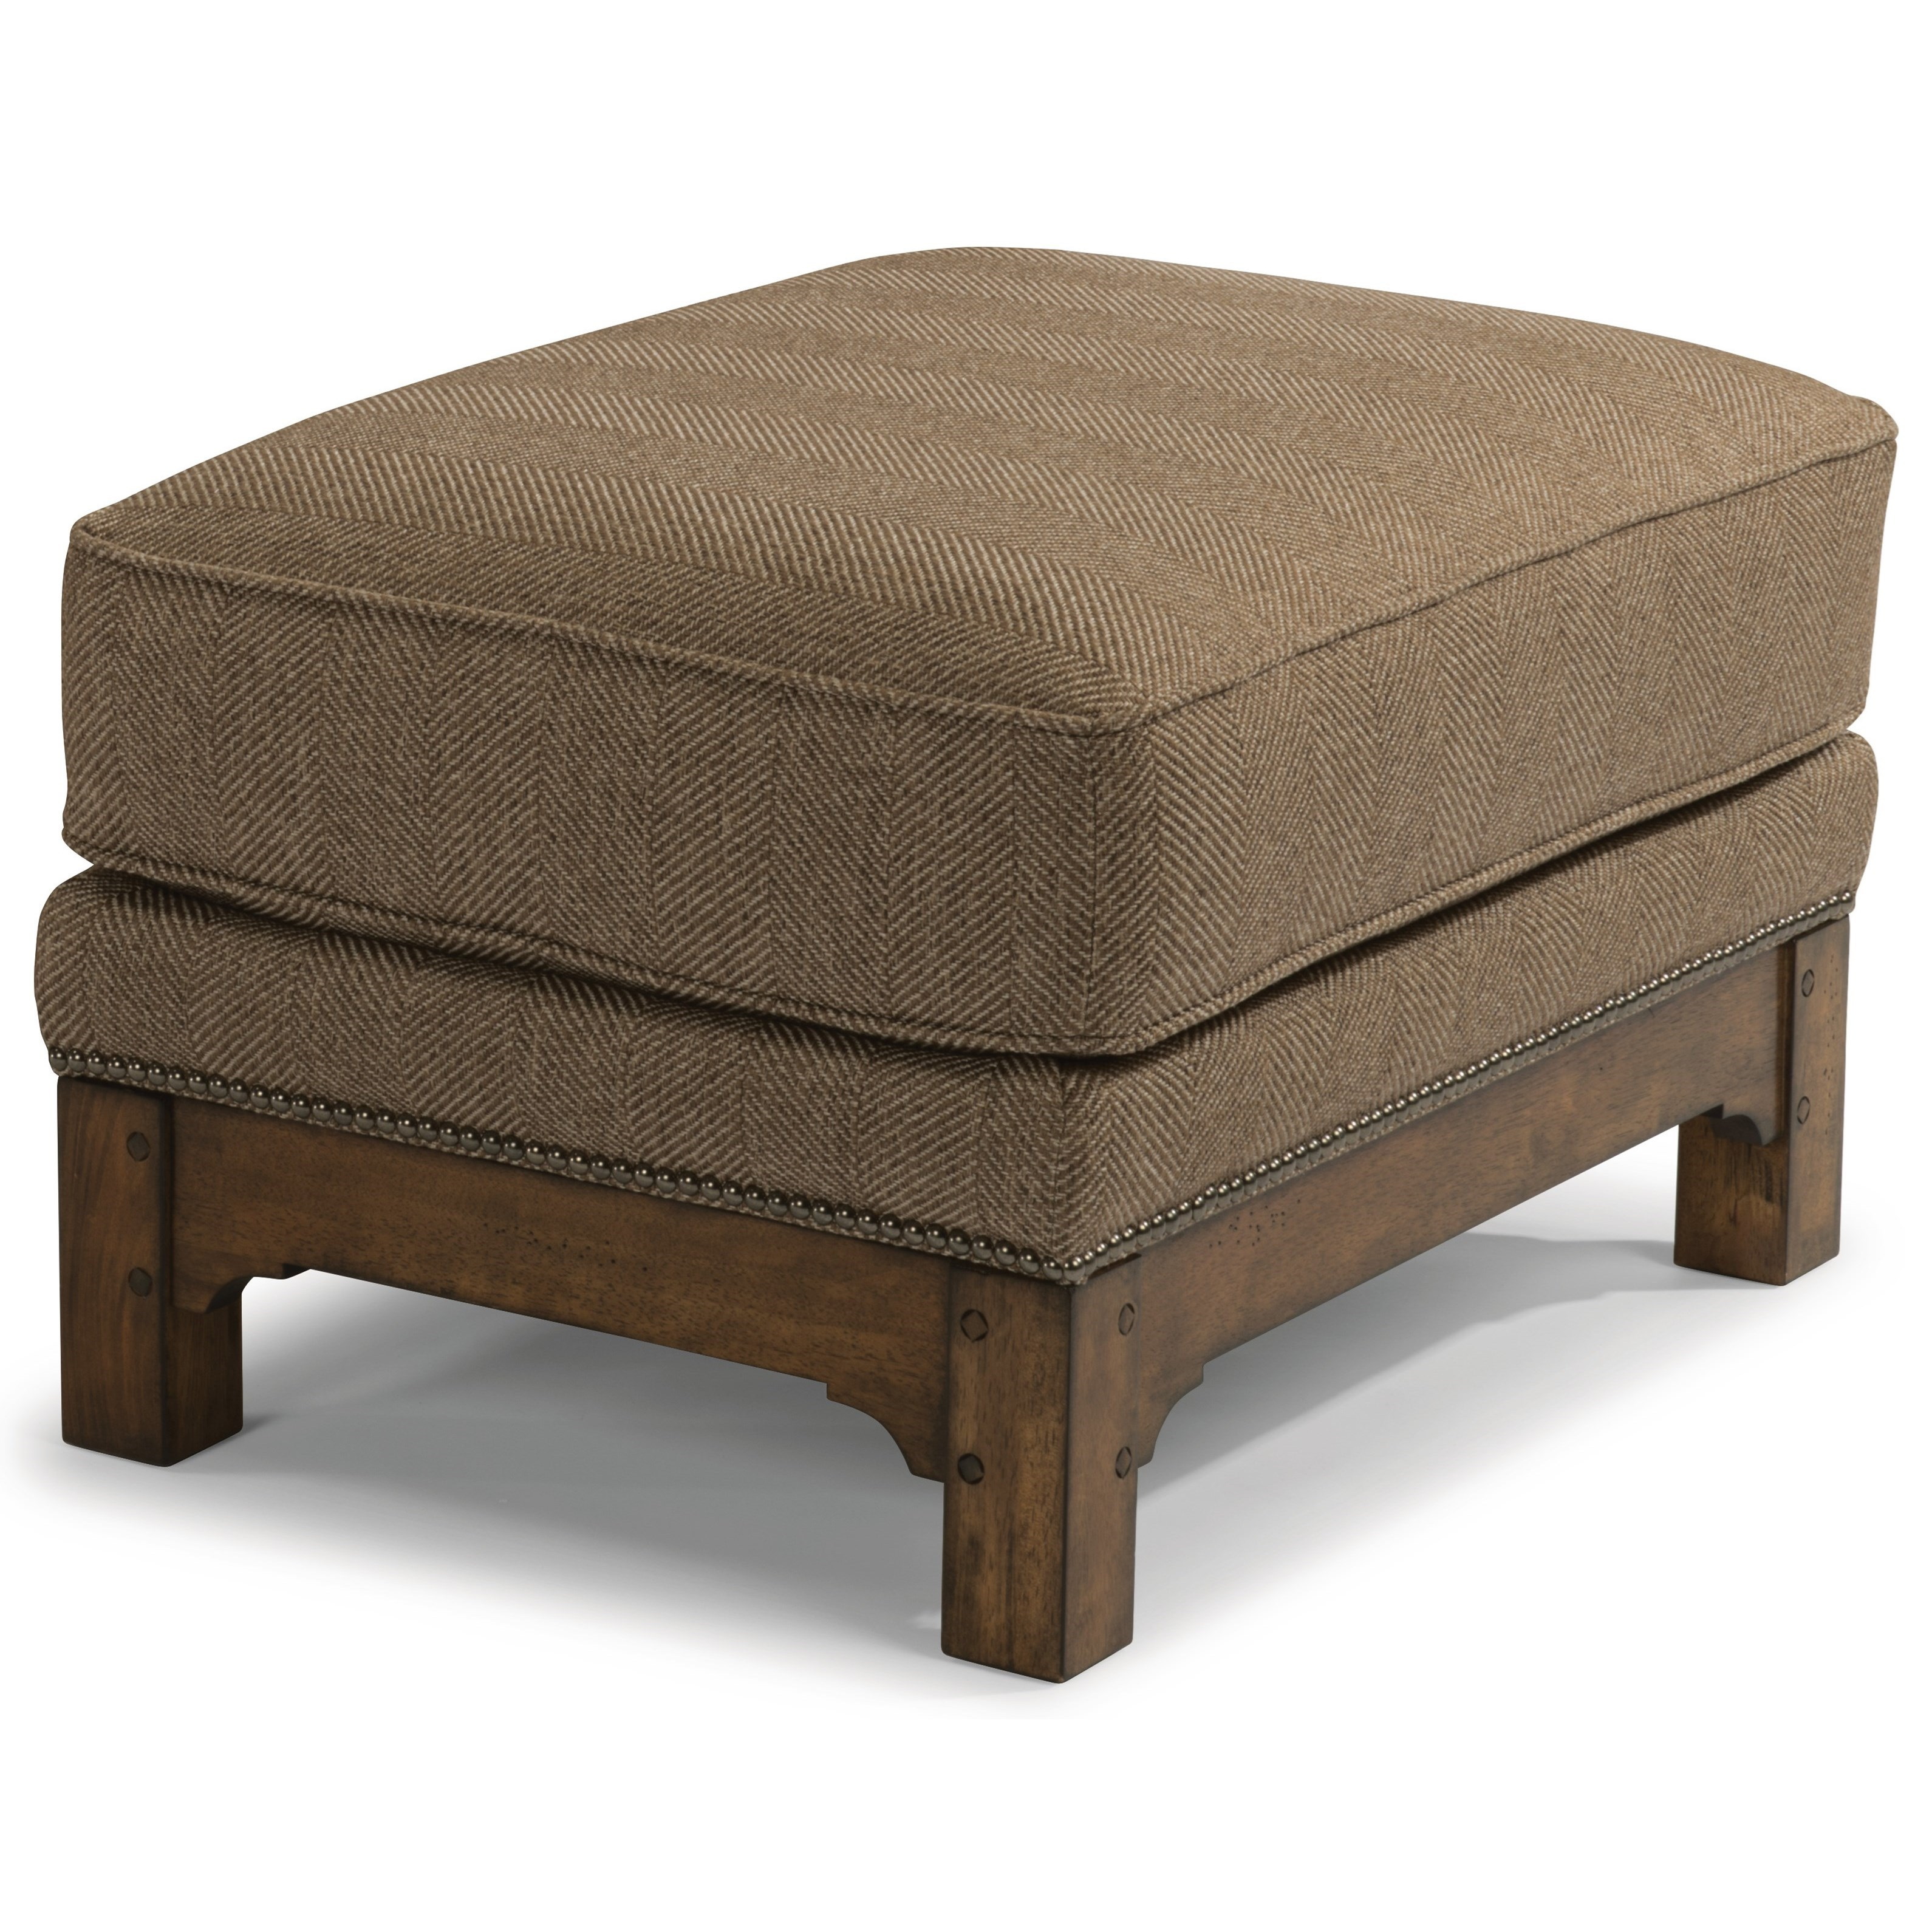 Flexsteel Sofa Mission: Flexsteel Sonora 7944-08 Mission Ottoman With Nailhead